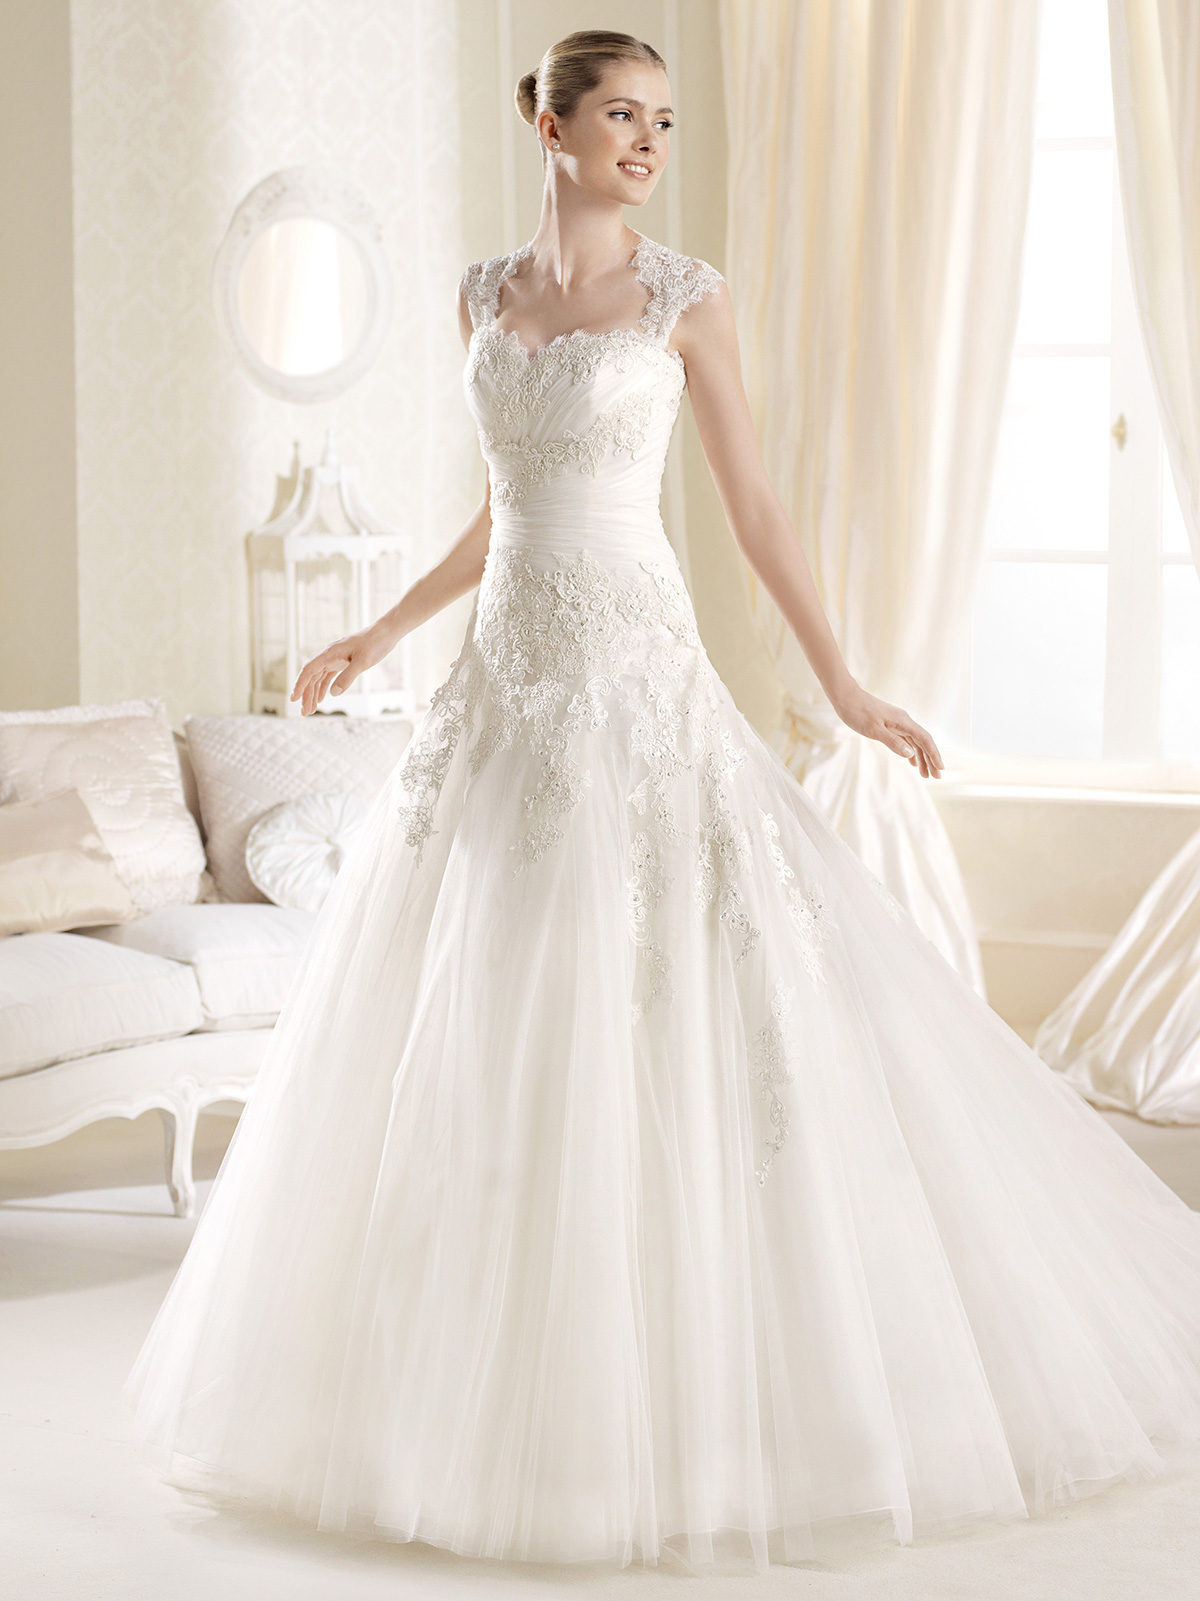 lace a line wedding dresses with cap sleeves wedding dress cap sleeves lace a line wedding dresses with cap sleeves